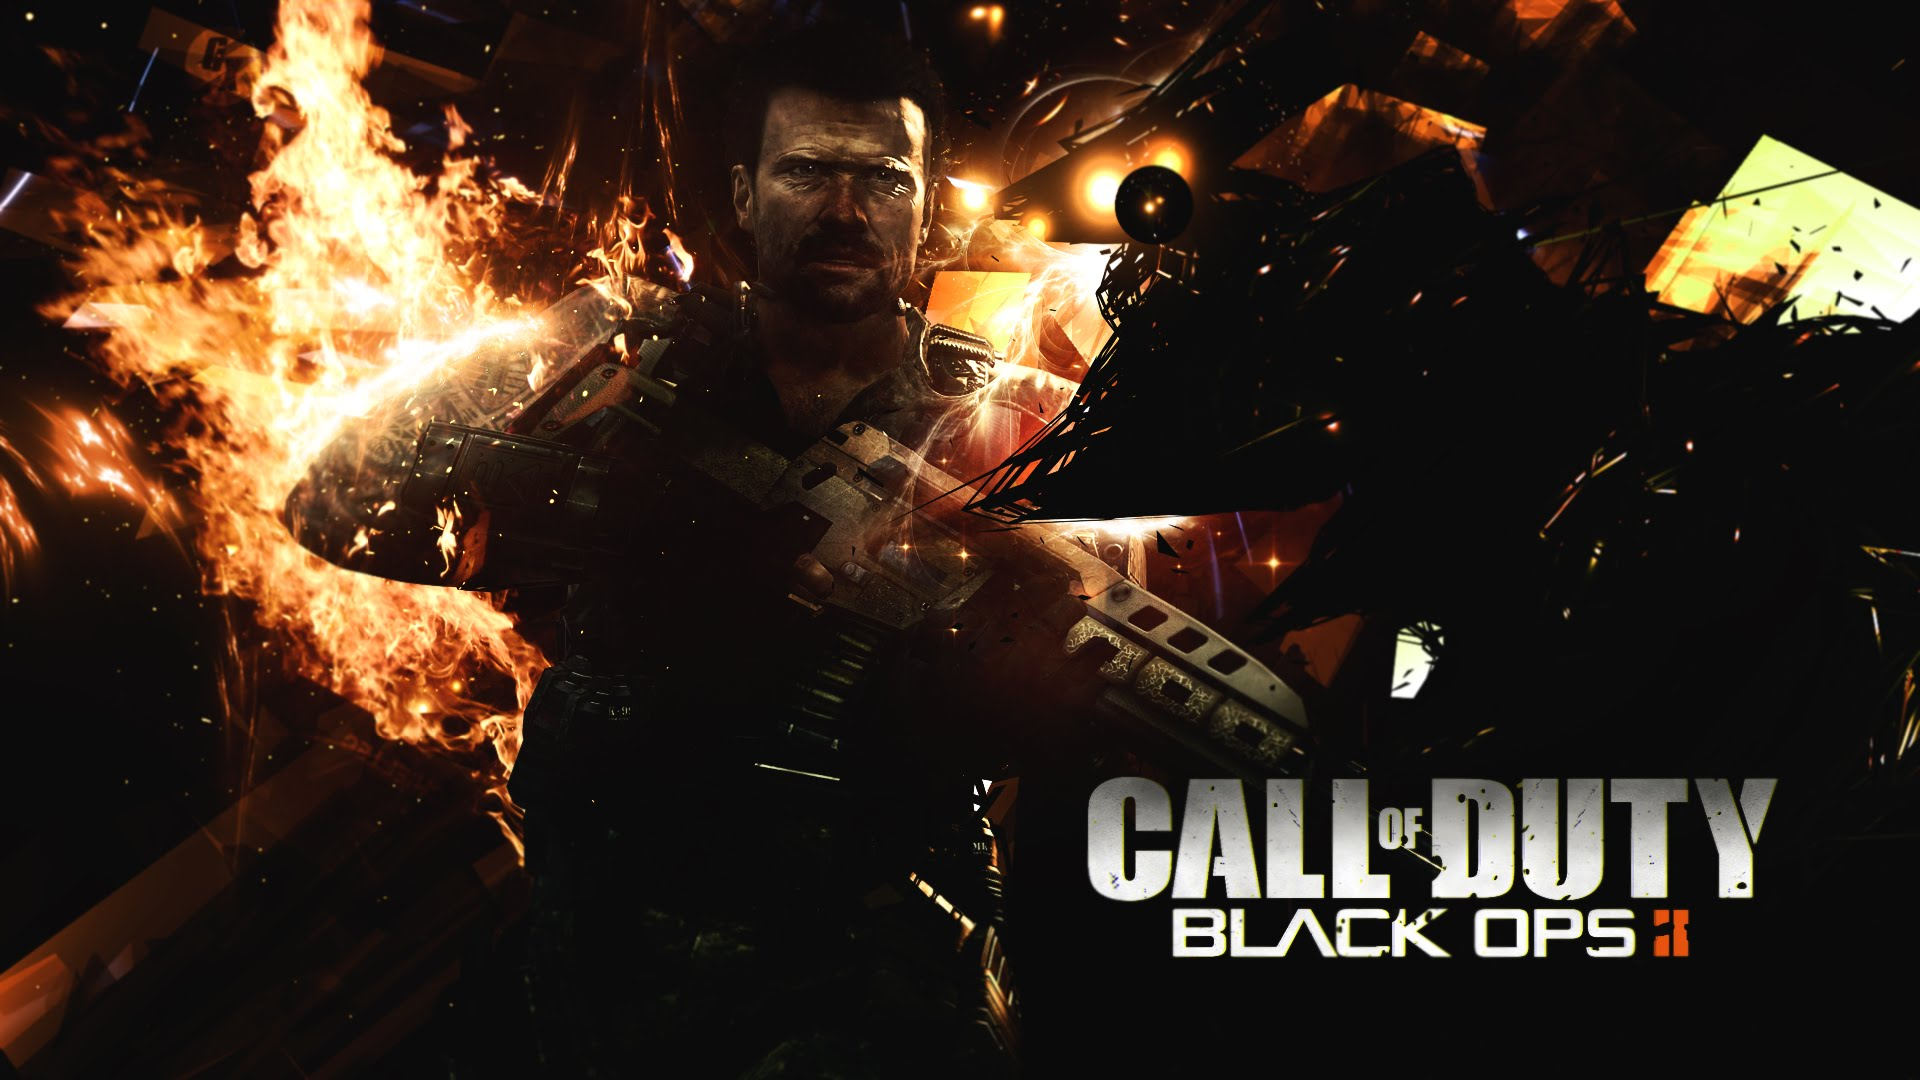 Call-Of-Duty-Black-Ops-PS-Jugando-Con-Subs-Parte-wallpaper-wp3403641